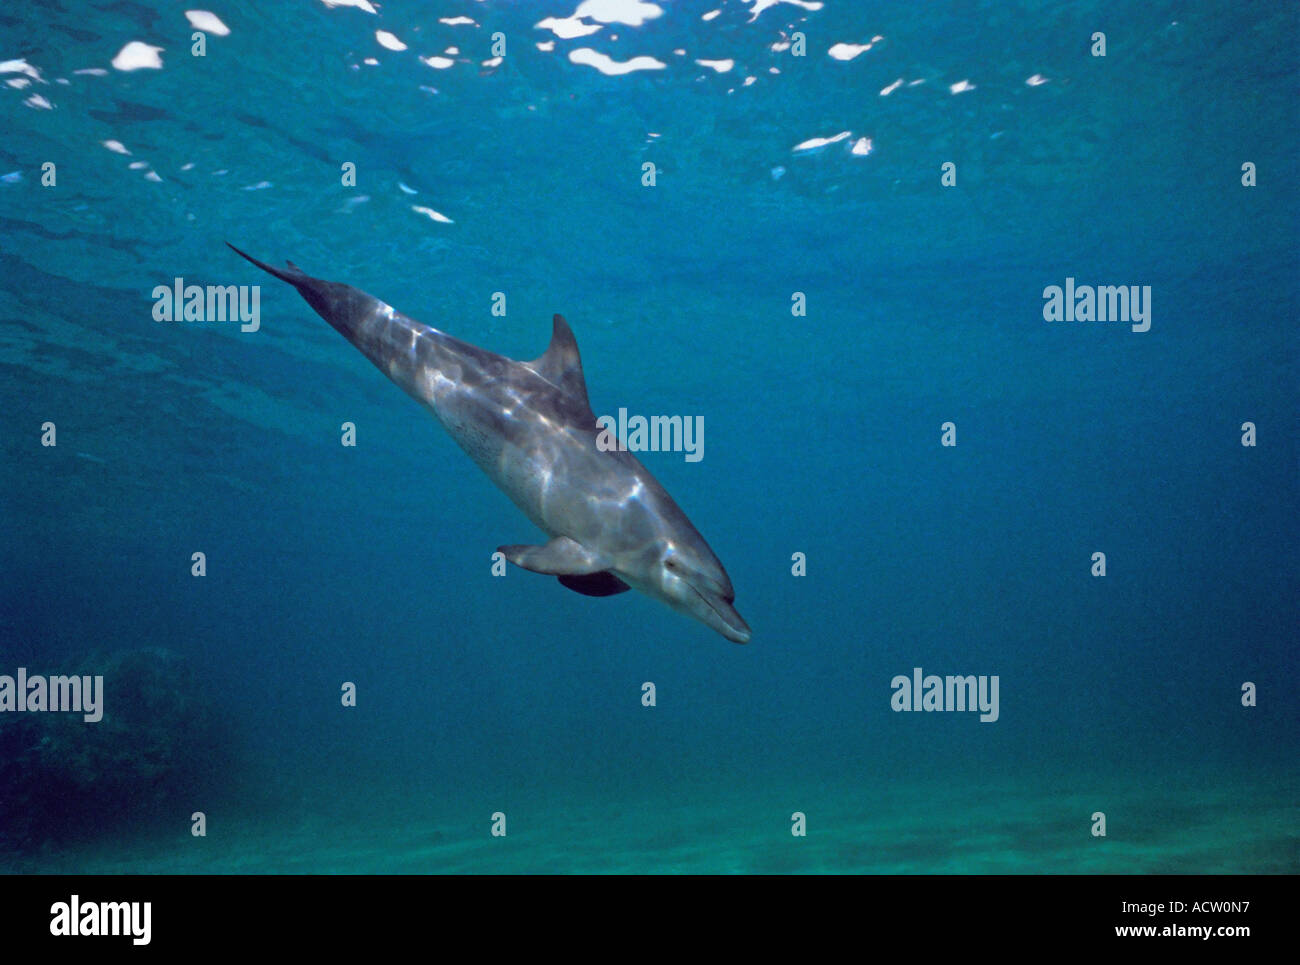 A wide angle view of a Bottlenose dolphin (Tursiops truncates) underwater against a blue background. - Stock Image